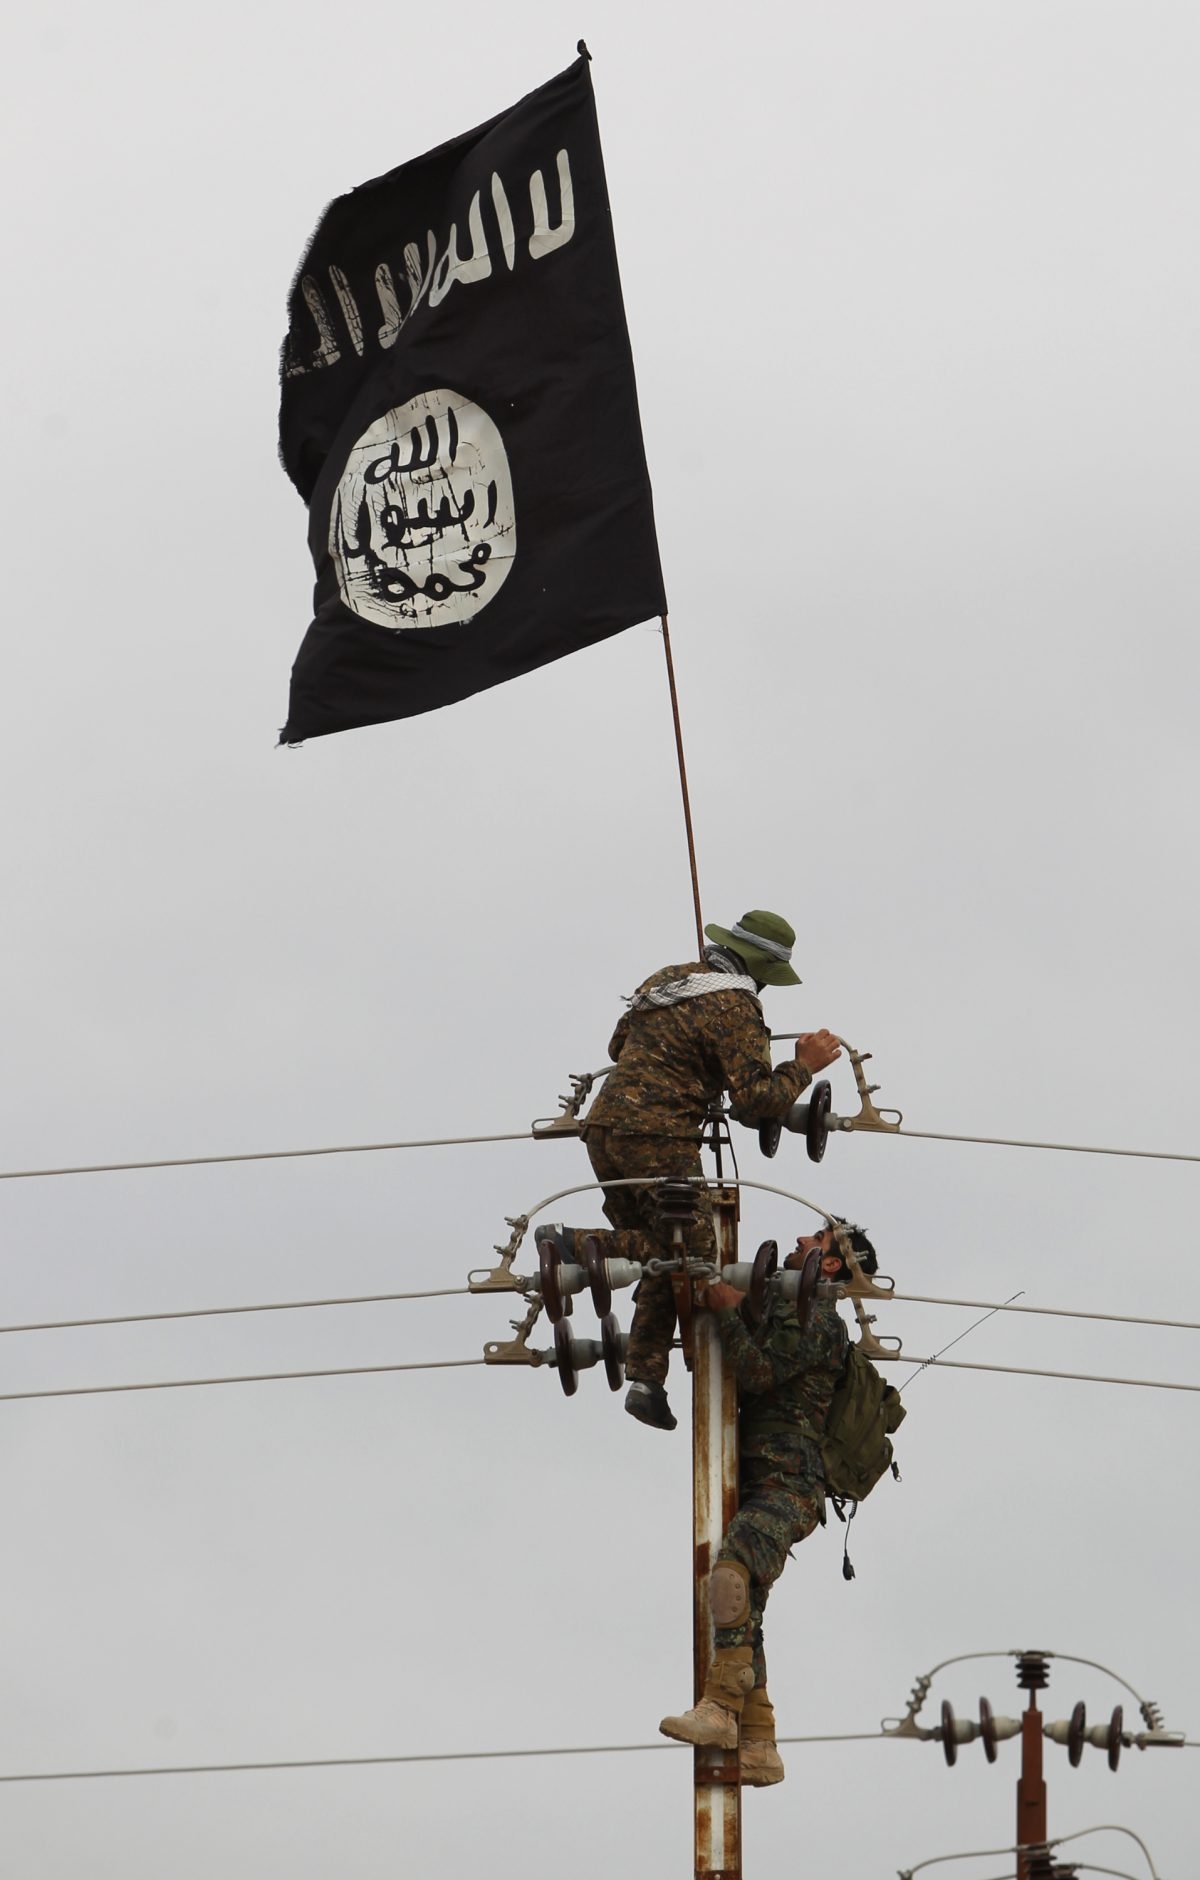 Iraqi Shiite fighters from the Popular Mobilization units take off an Islamic State flag from an electricity pole on March 3, 2016, during an operation in the desert of Samarra aimed at retaking areas from ISIS jihadists. (Ahmad al-Rubaye/AFP/Getty Images)